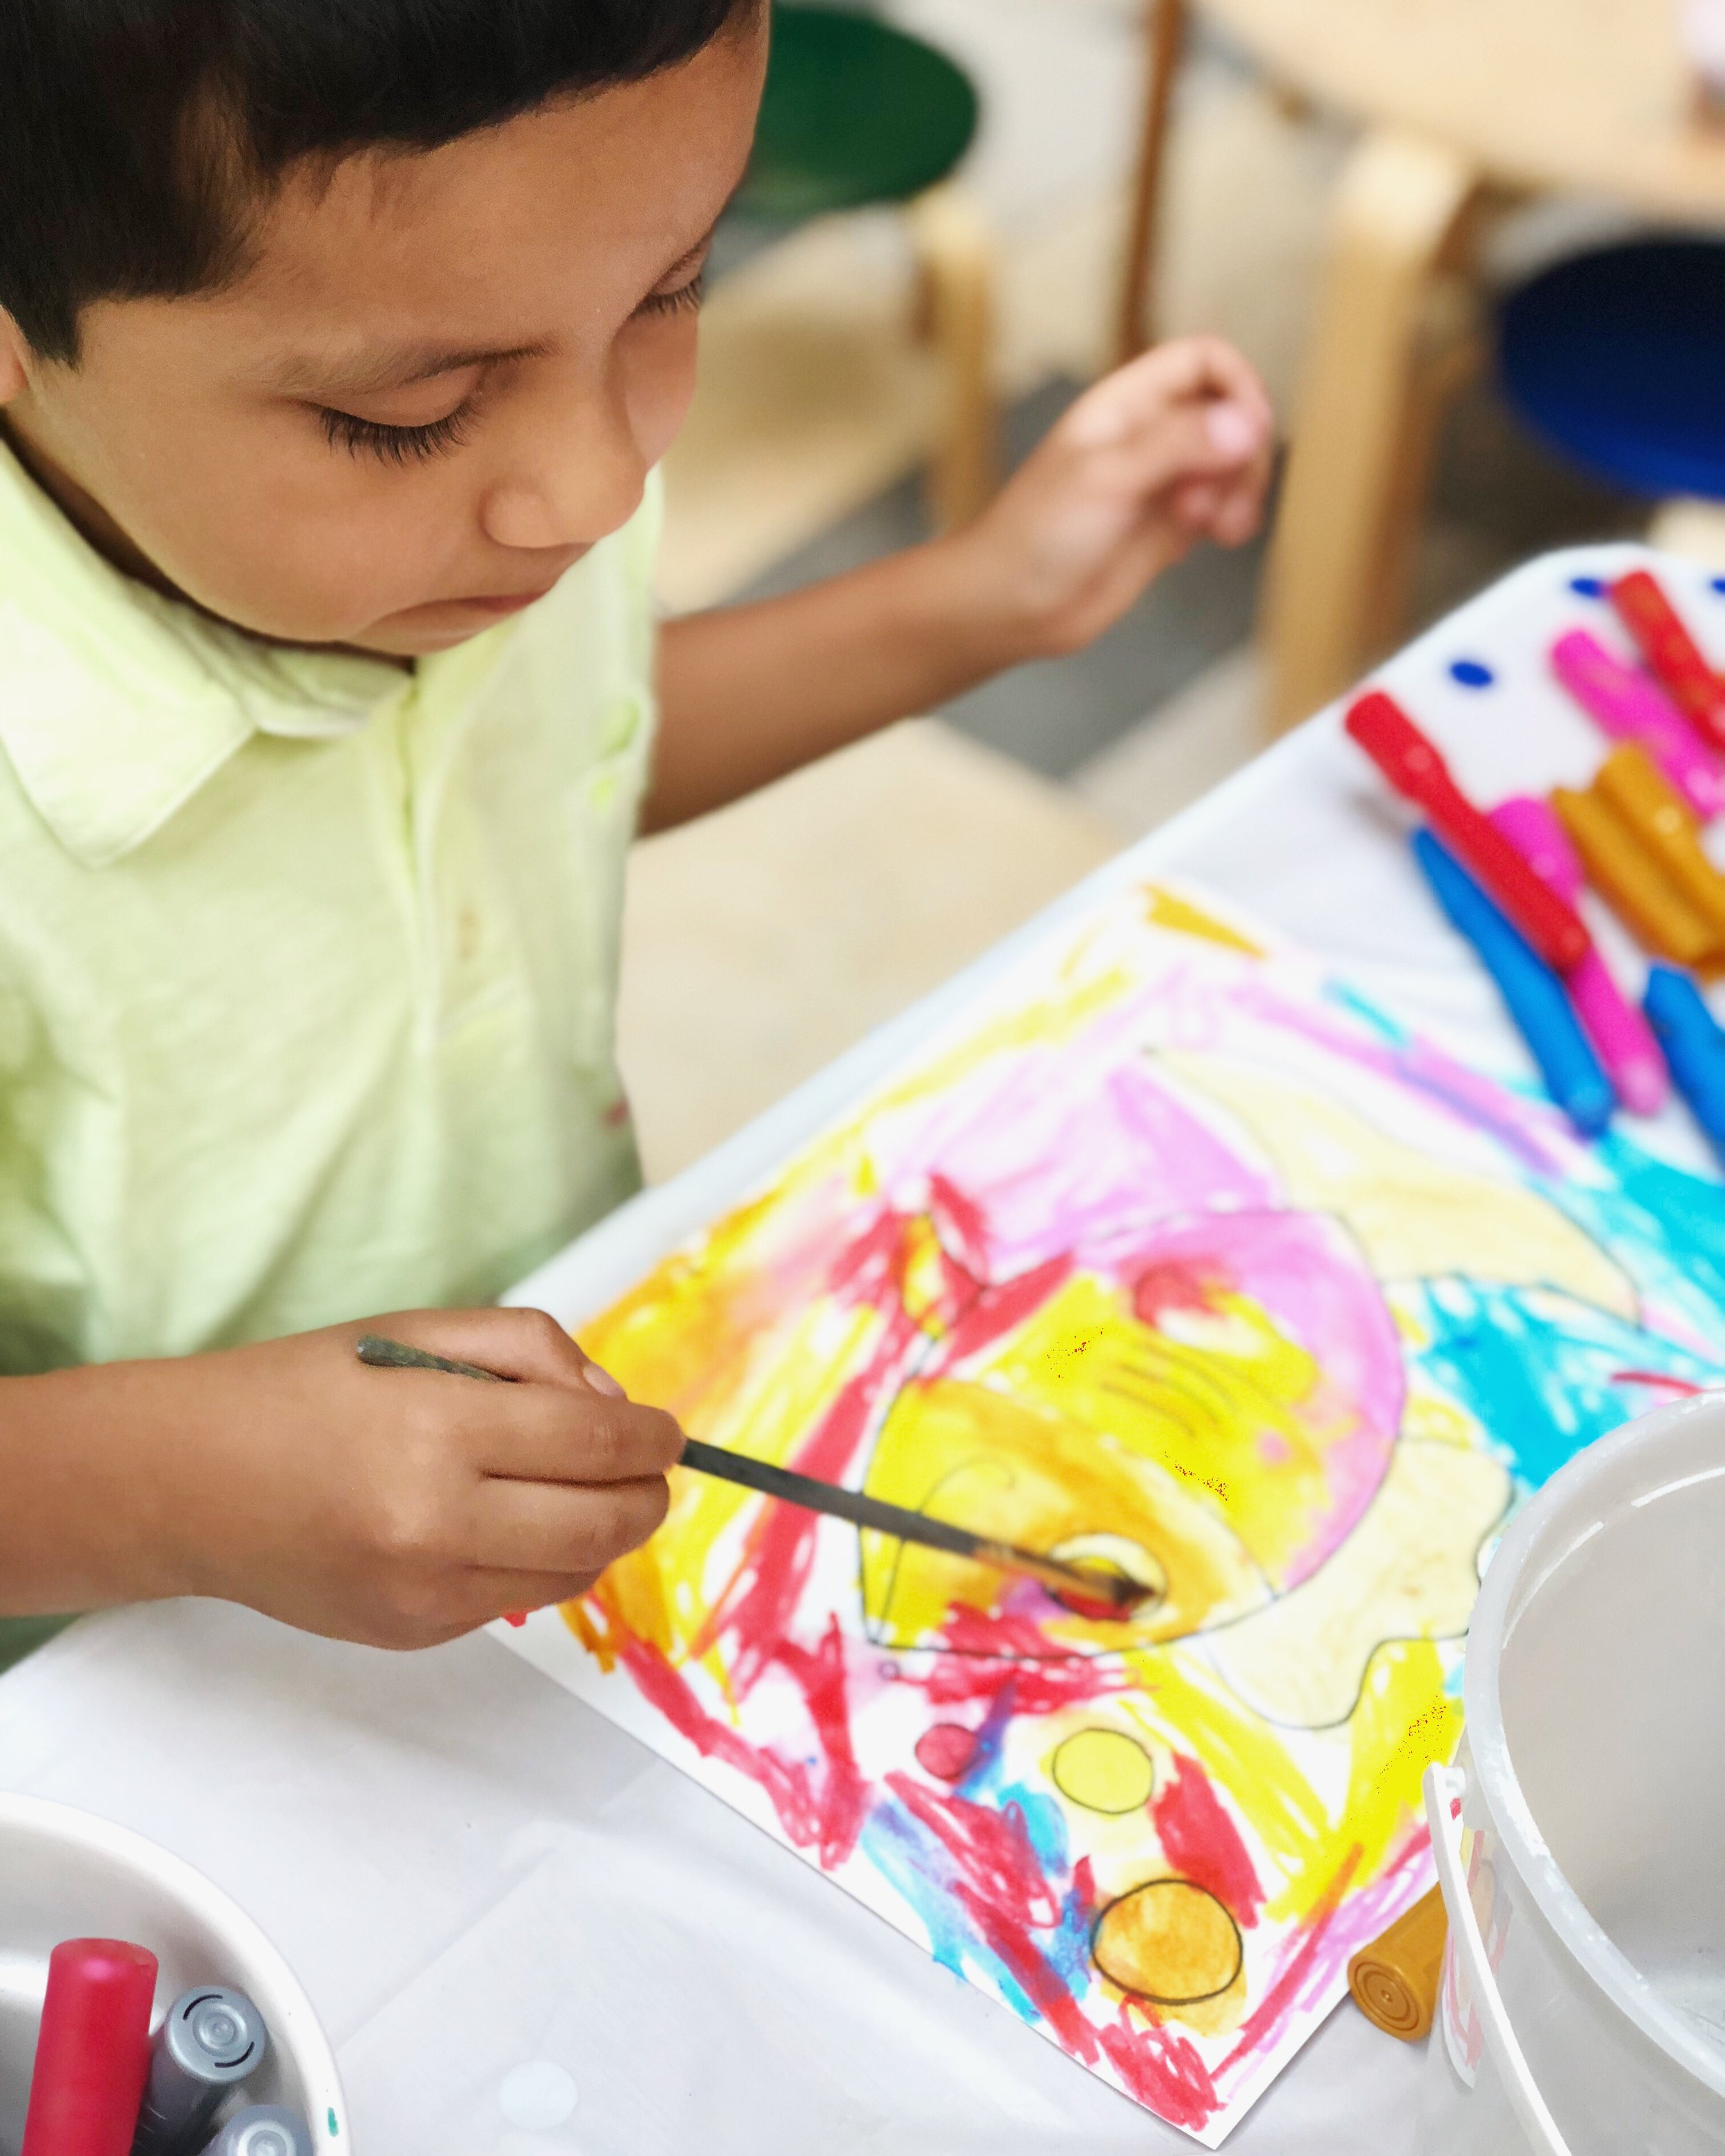 image of a boy painting a colorful fish